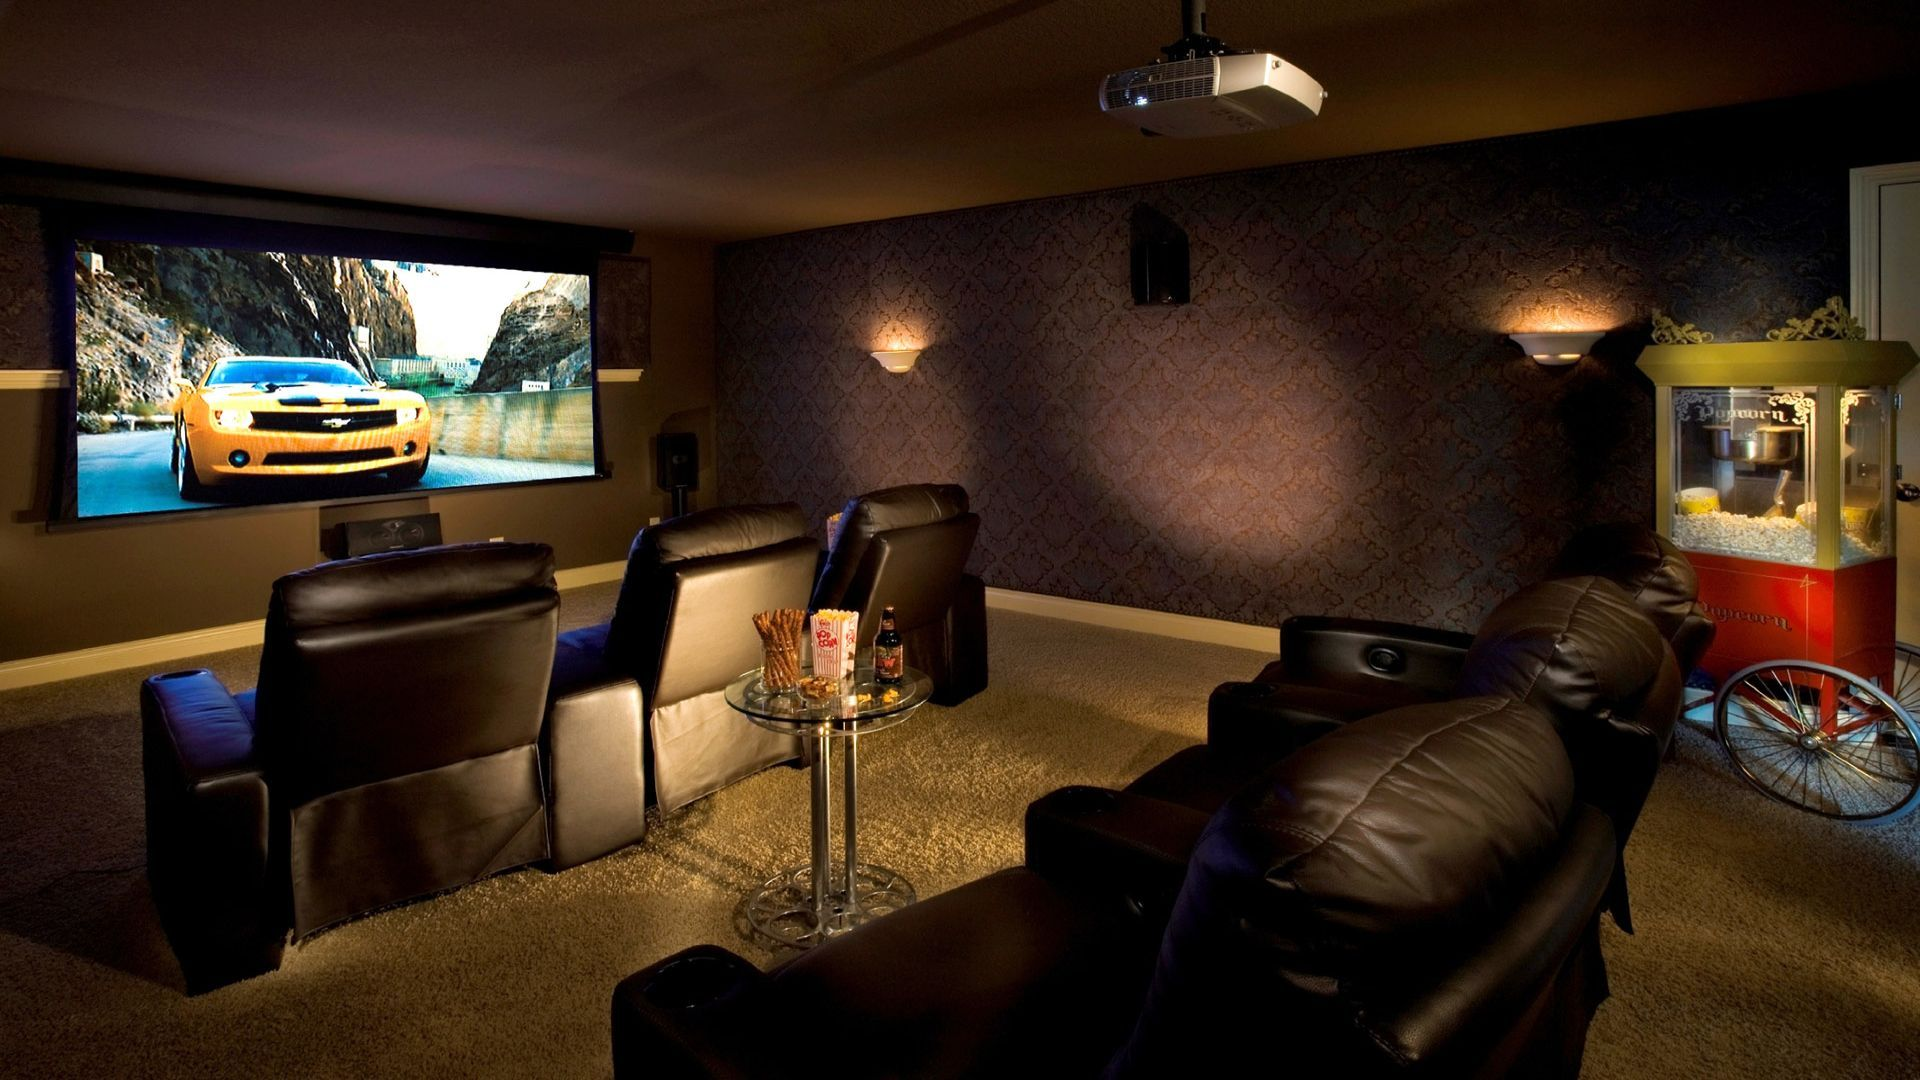 Home theater wallpaper 8677 1920x1080